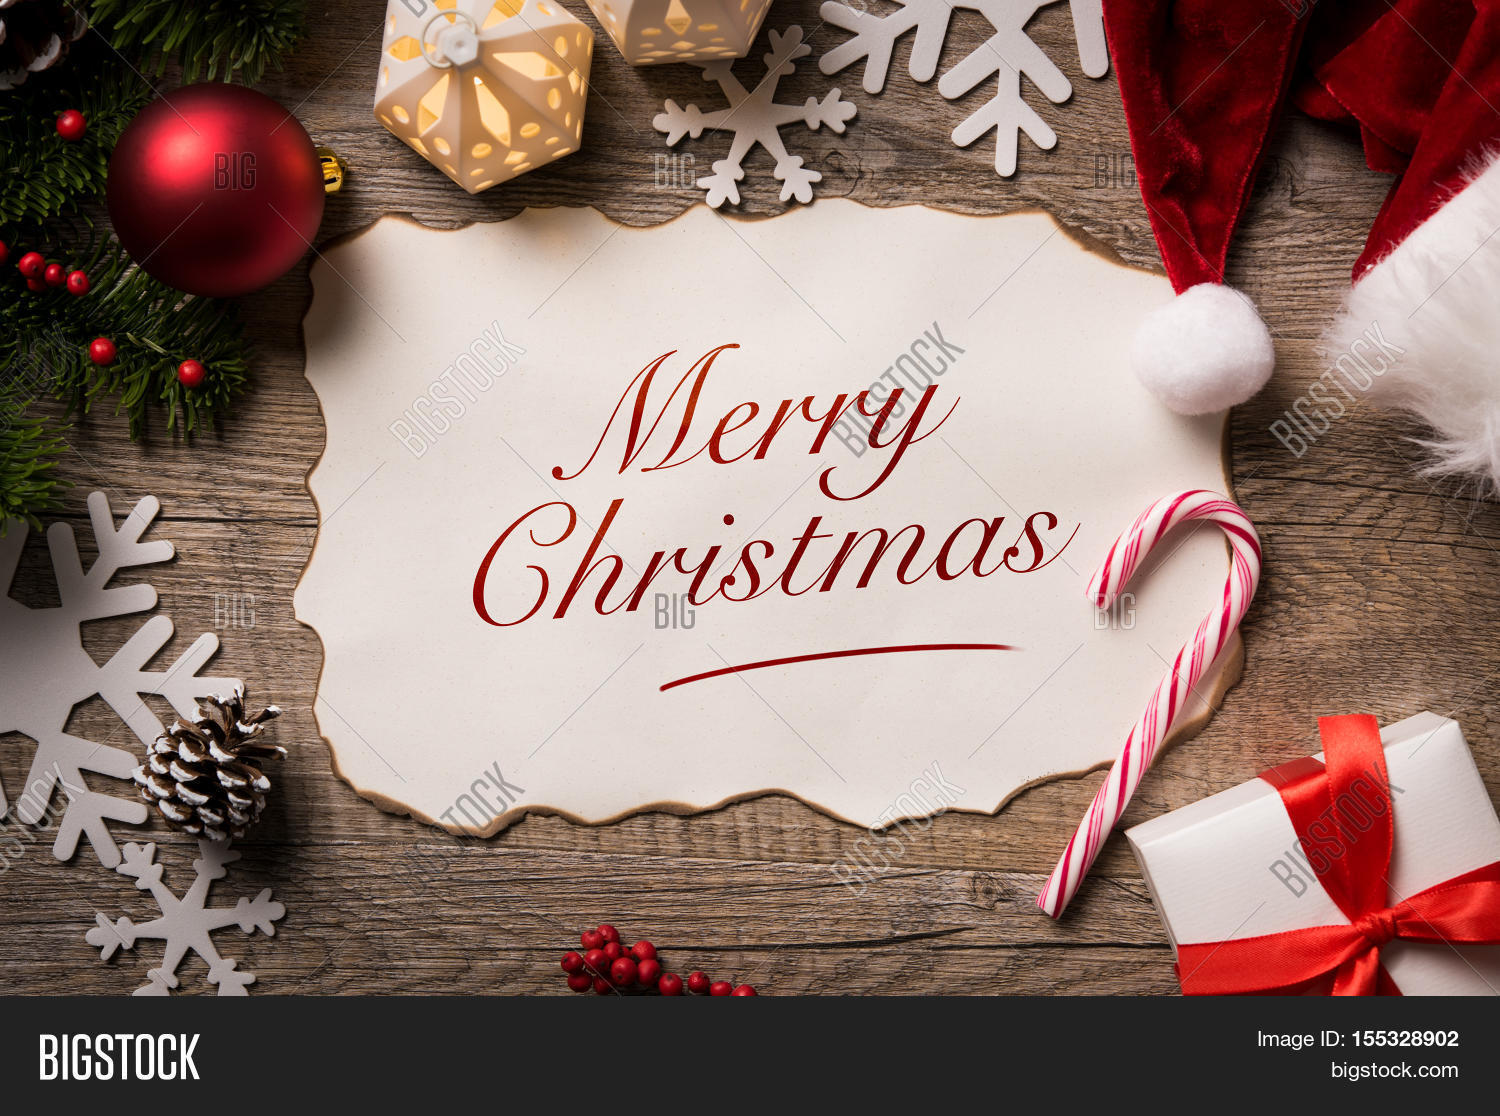 High Angle View Santa Image  Photo Free Trial  Bigstock